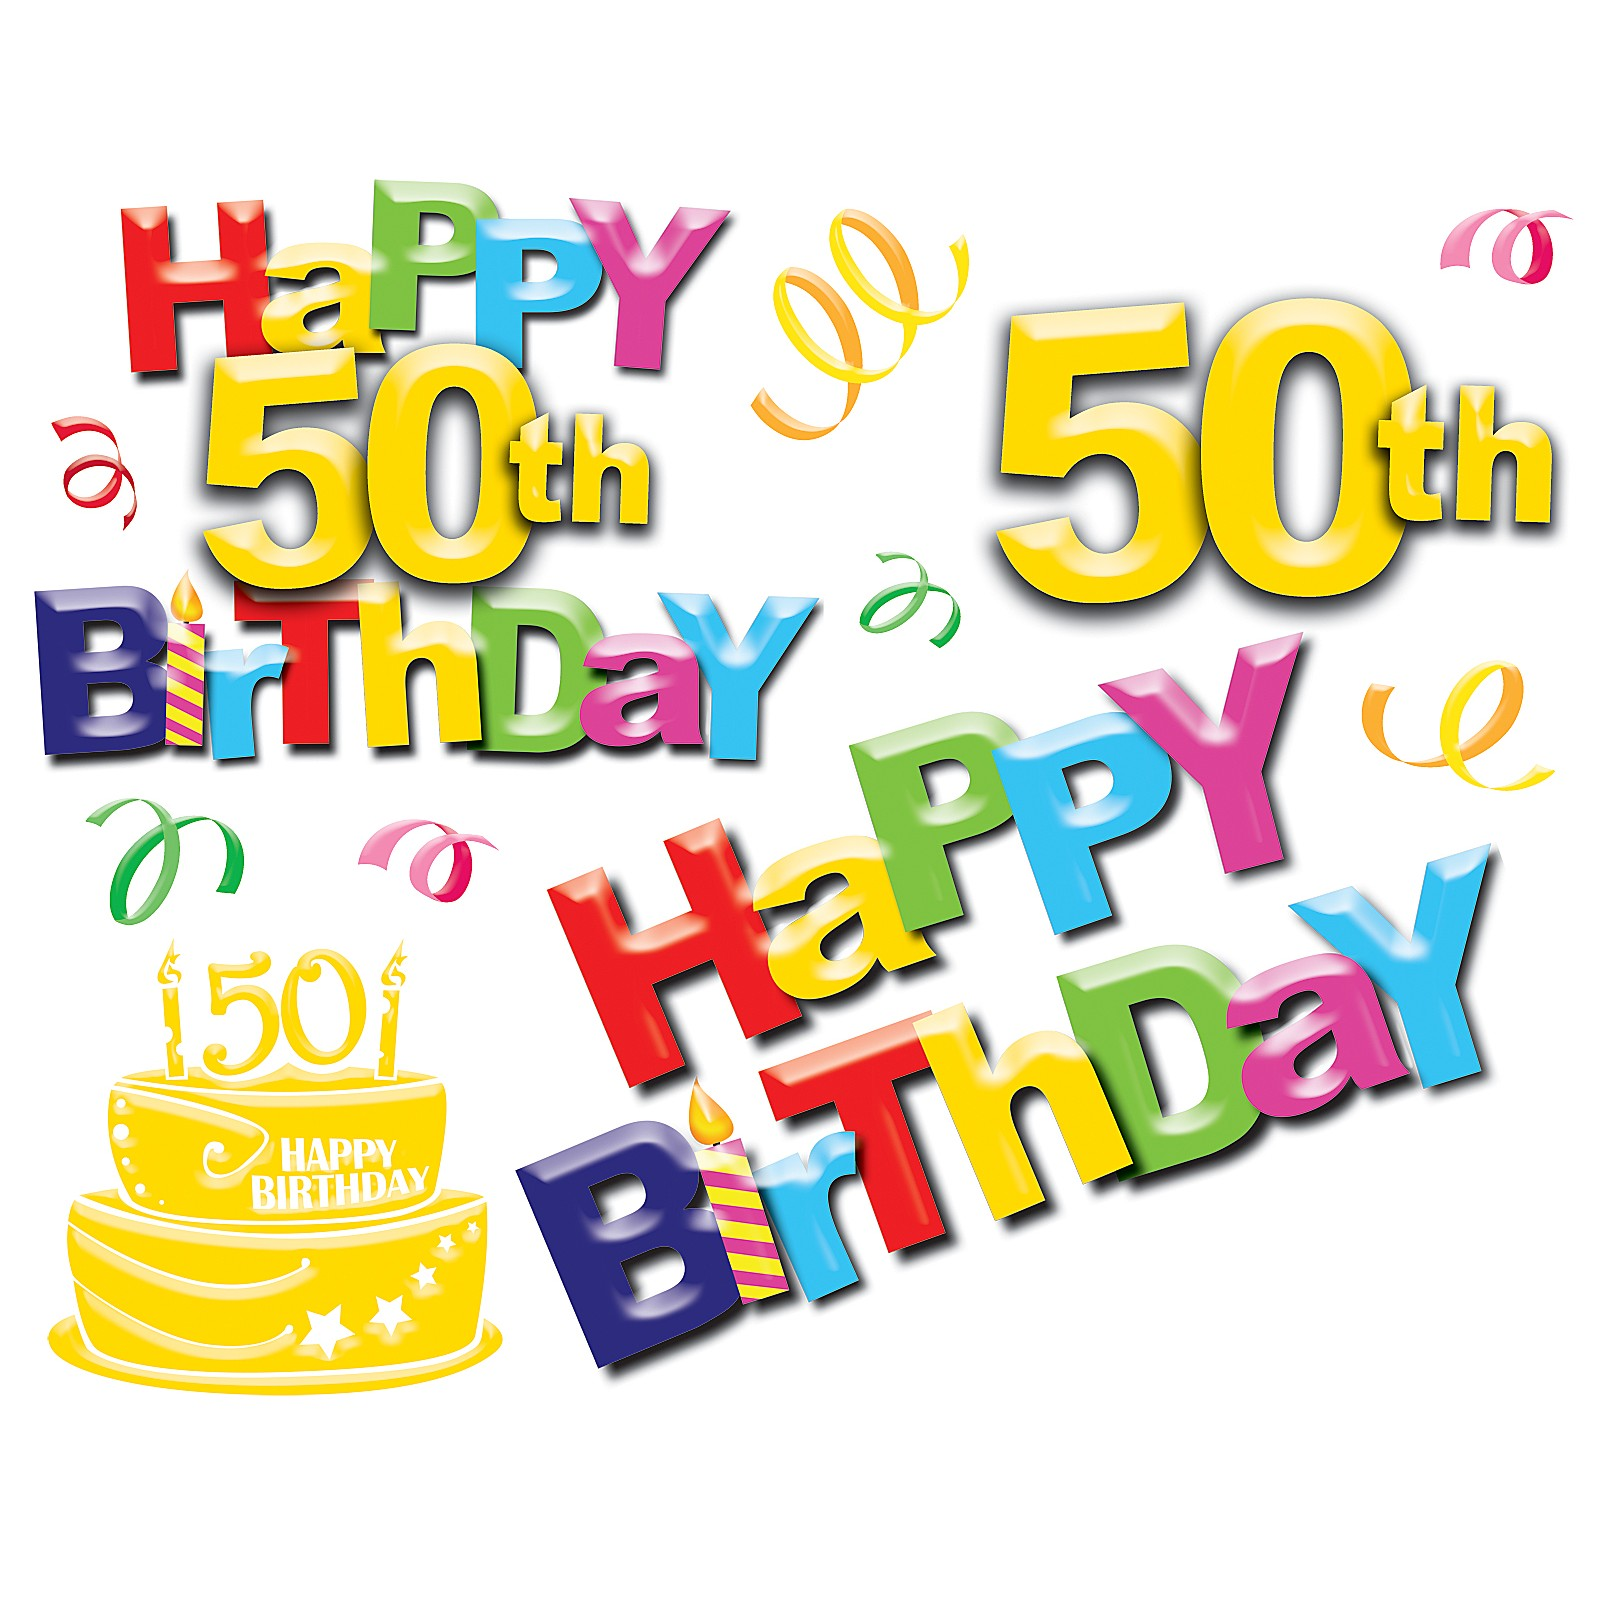 1600x1600 Over the hill old man birthday gifs clipart